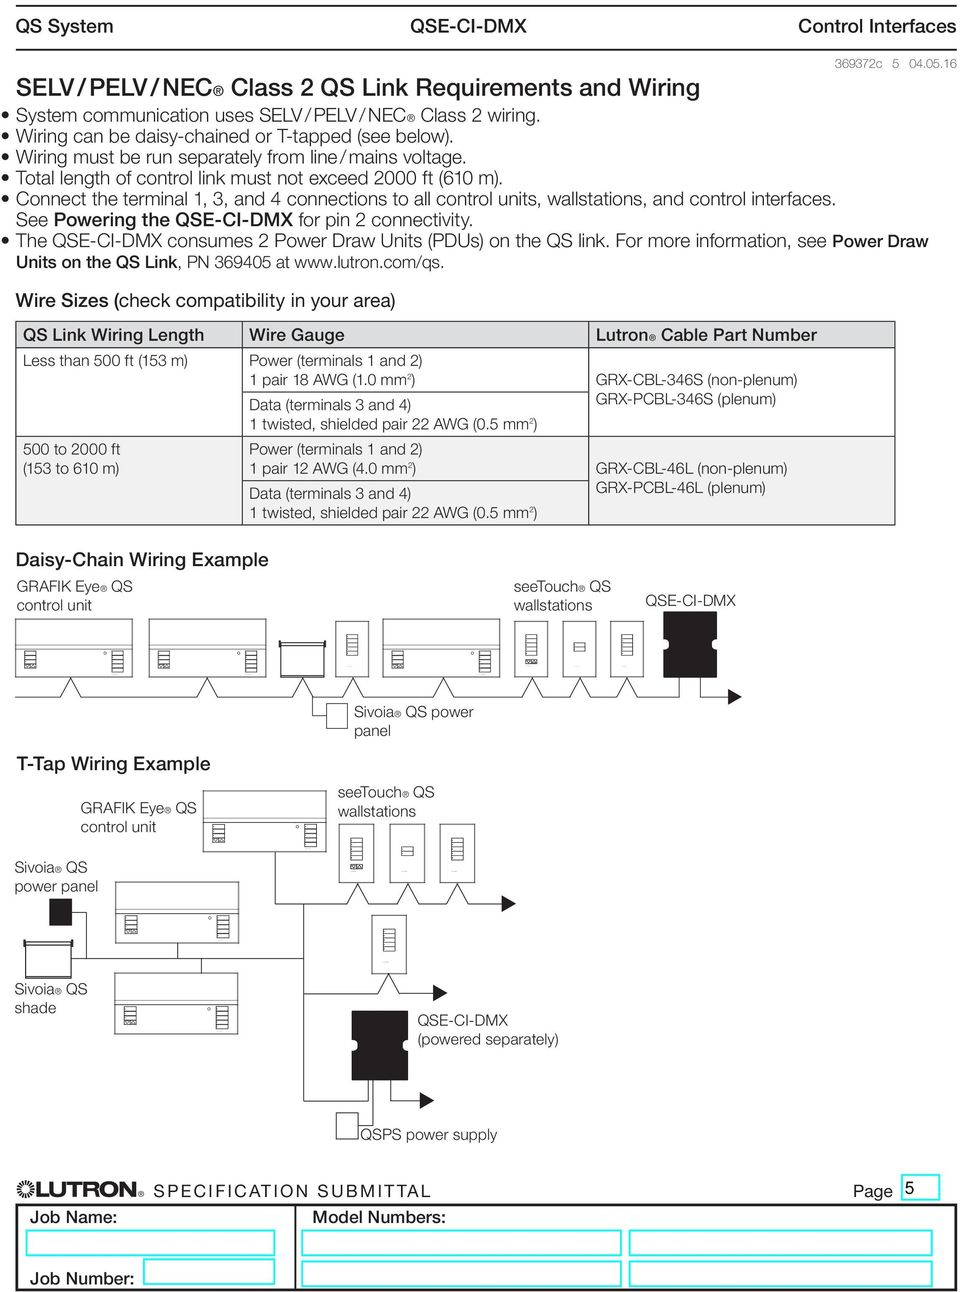 Qse Ci Dmx Control Interface Pdf Wiring Diagram Connect The Terminal 1 3 And 4 Connections To All Units Wallstations